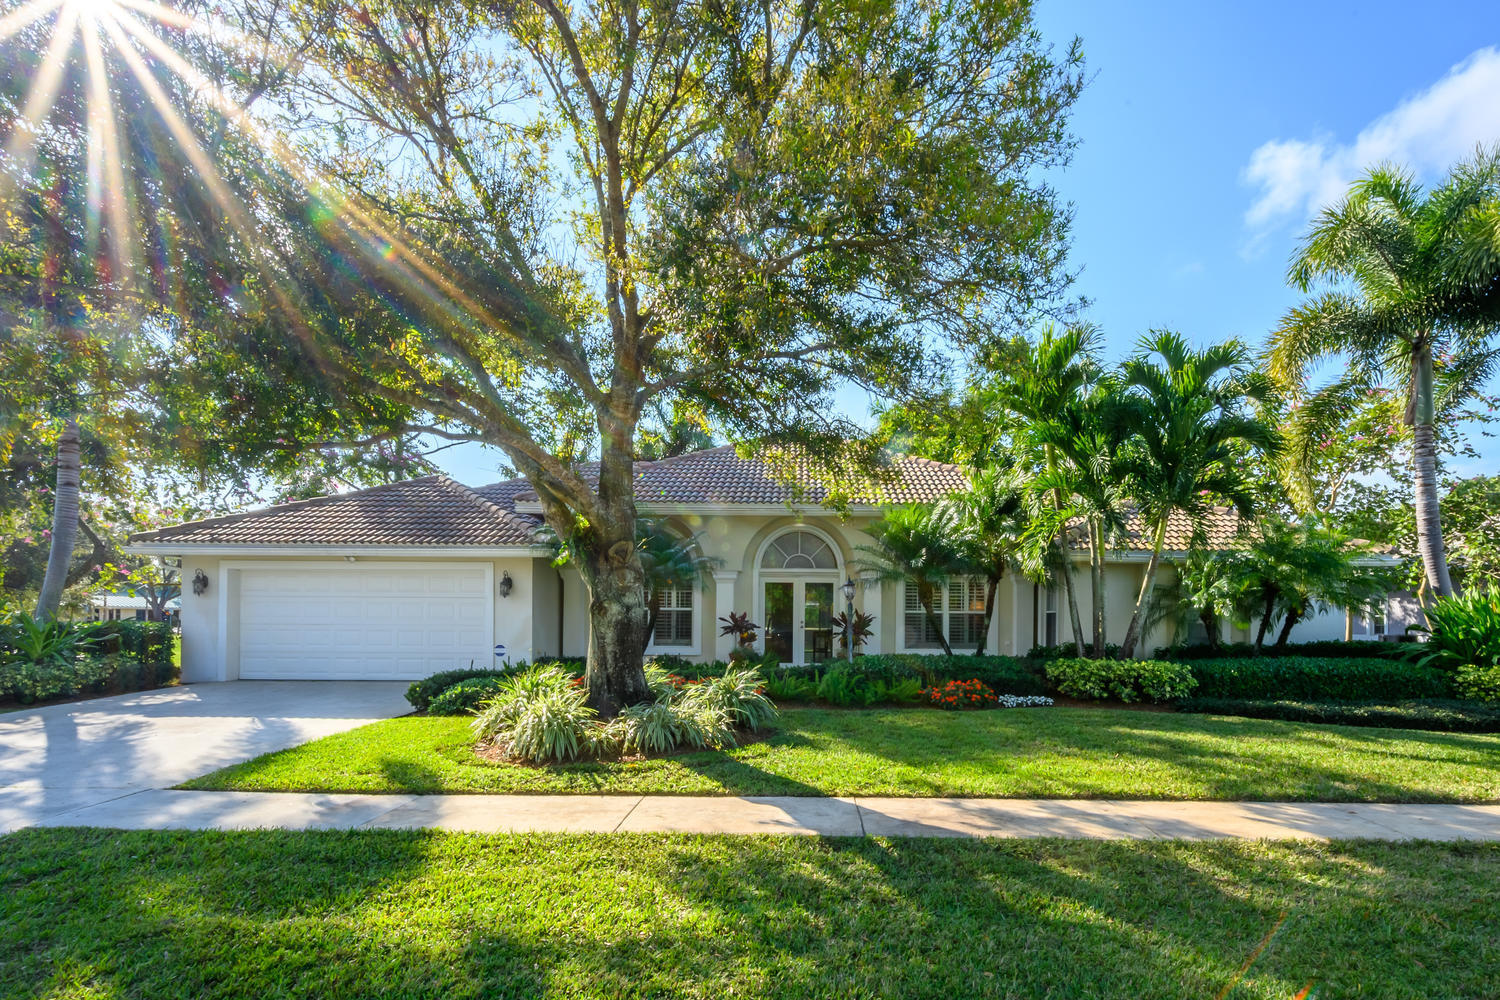 2718 Yarmouth Drive, Wellington, Florida 33414, 4 Bedrooms Bedrooms, ,2 BathroomsBathrooms,Single Family,For Sale,Yarmouth,RX-10606156